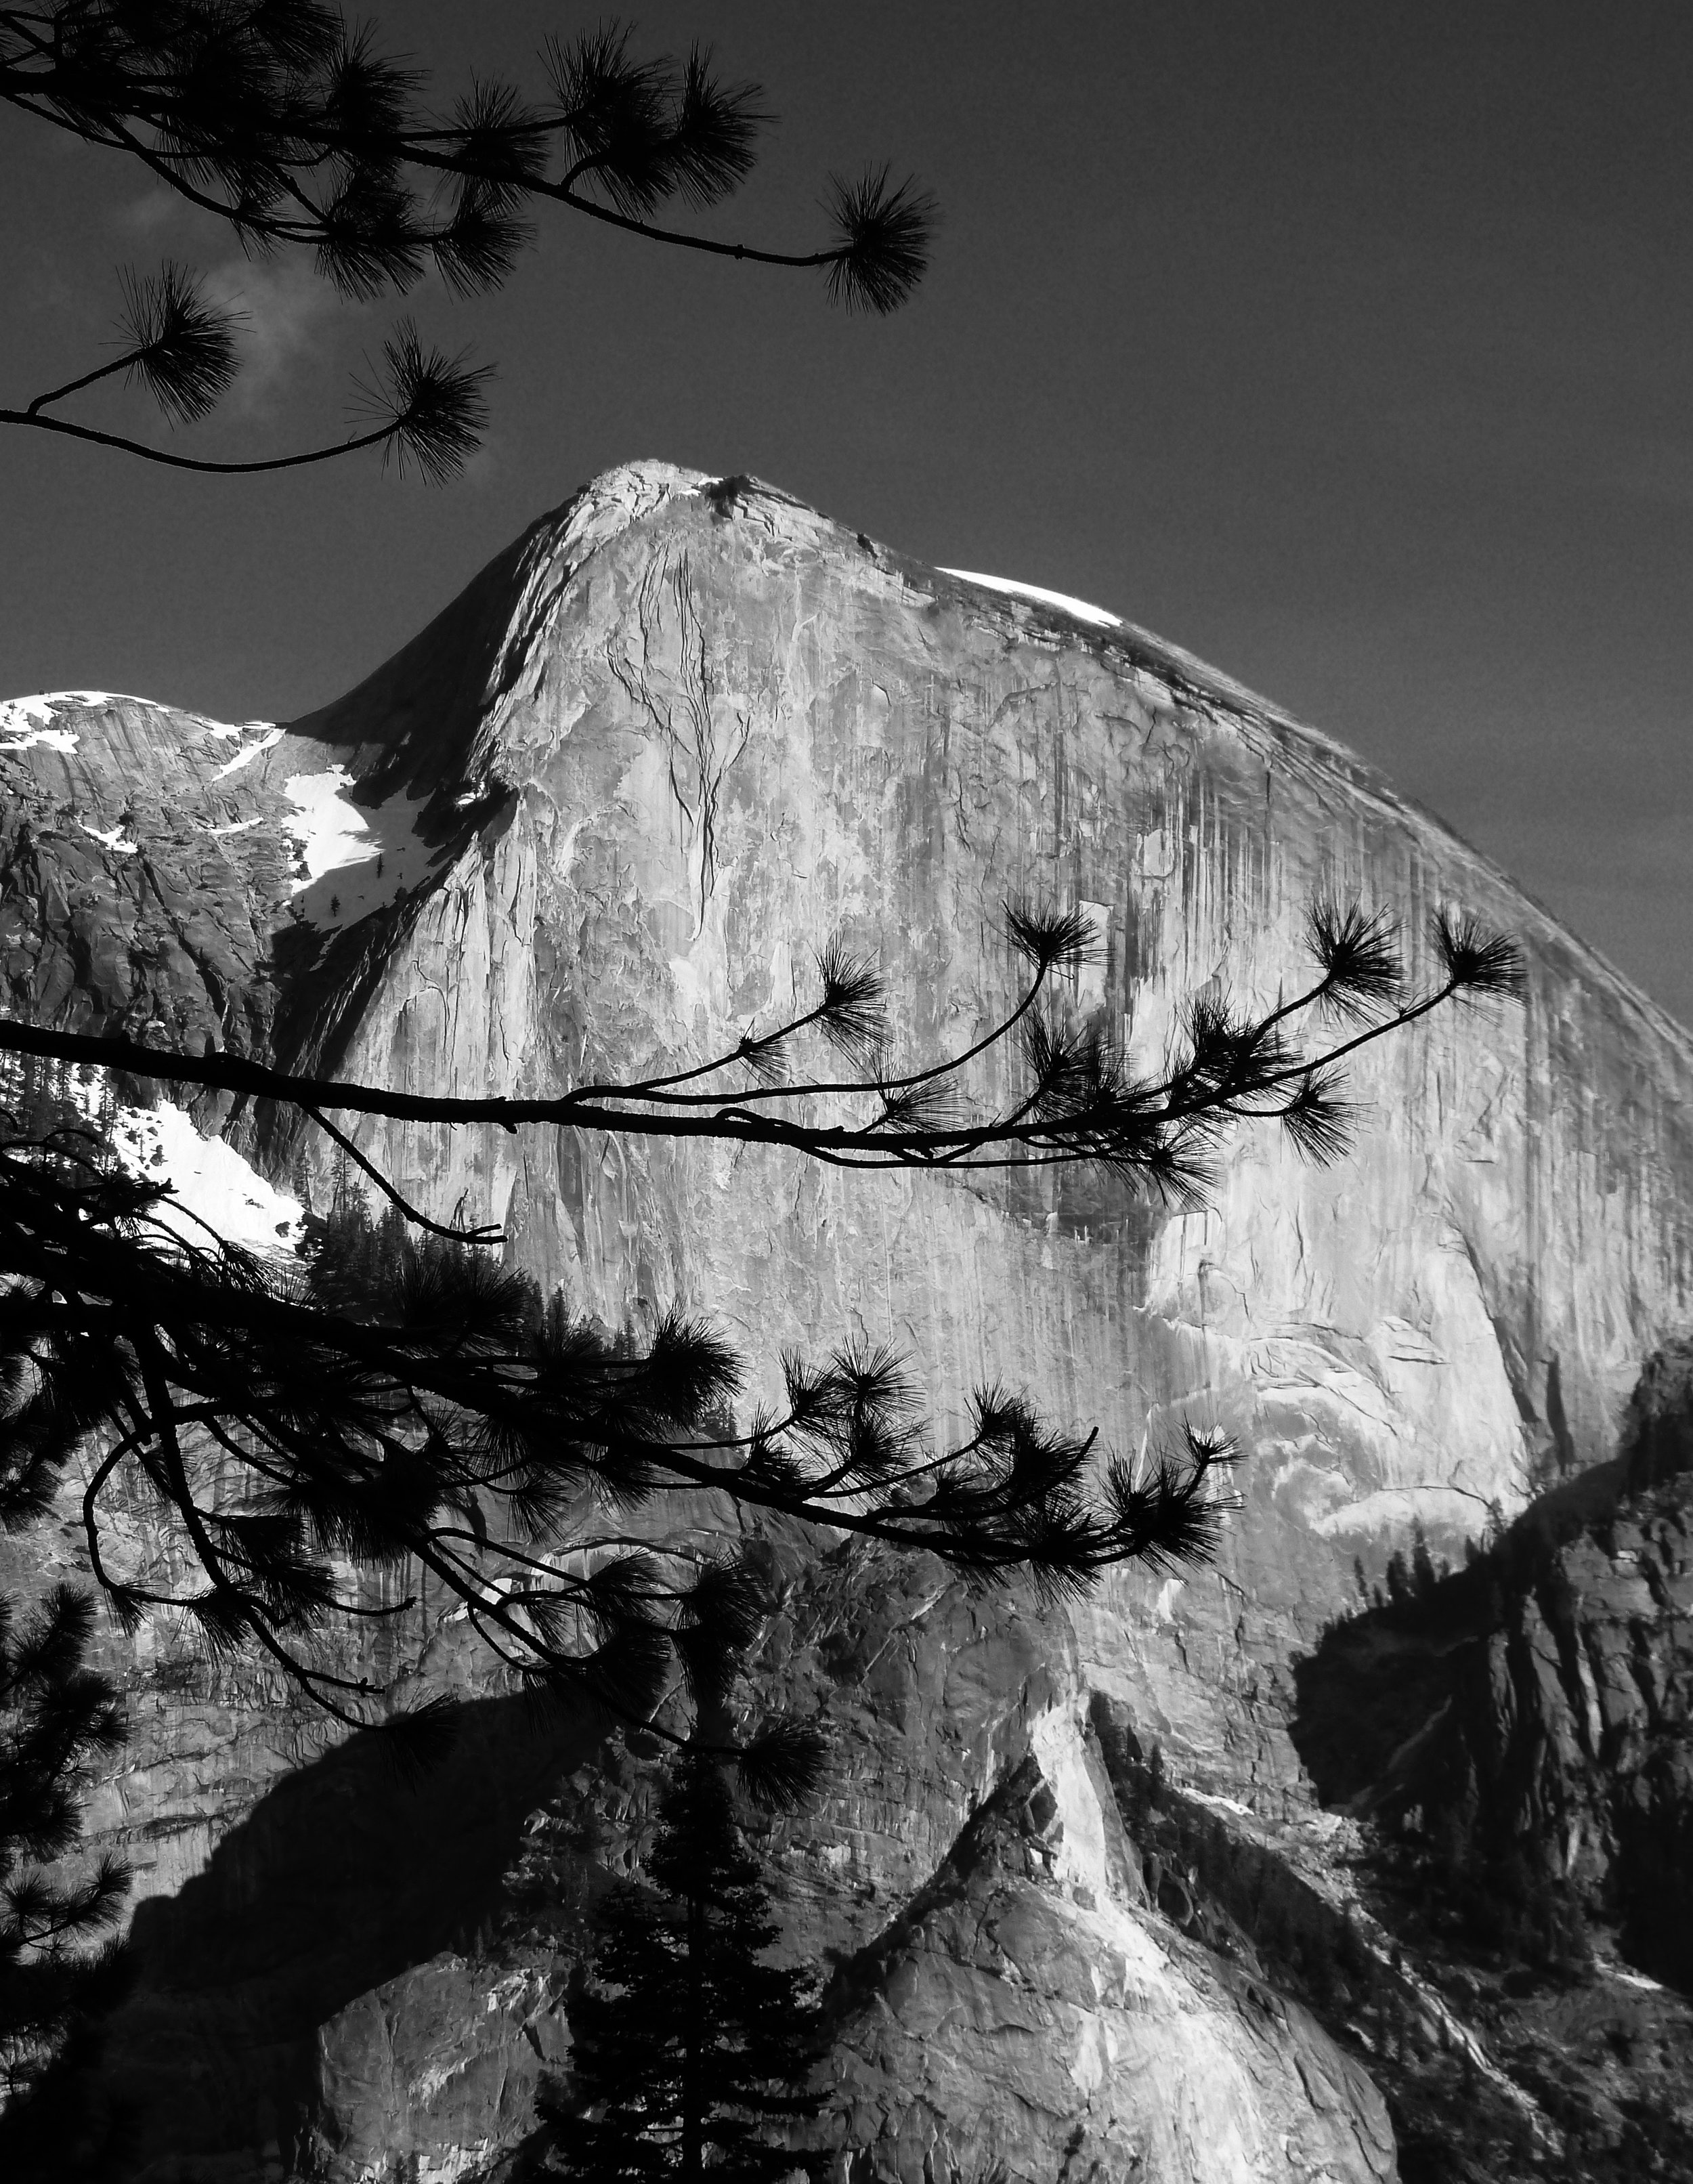 Half Dome, Yosemite National Park, viewed from Snow Creek.